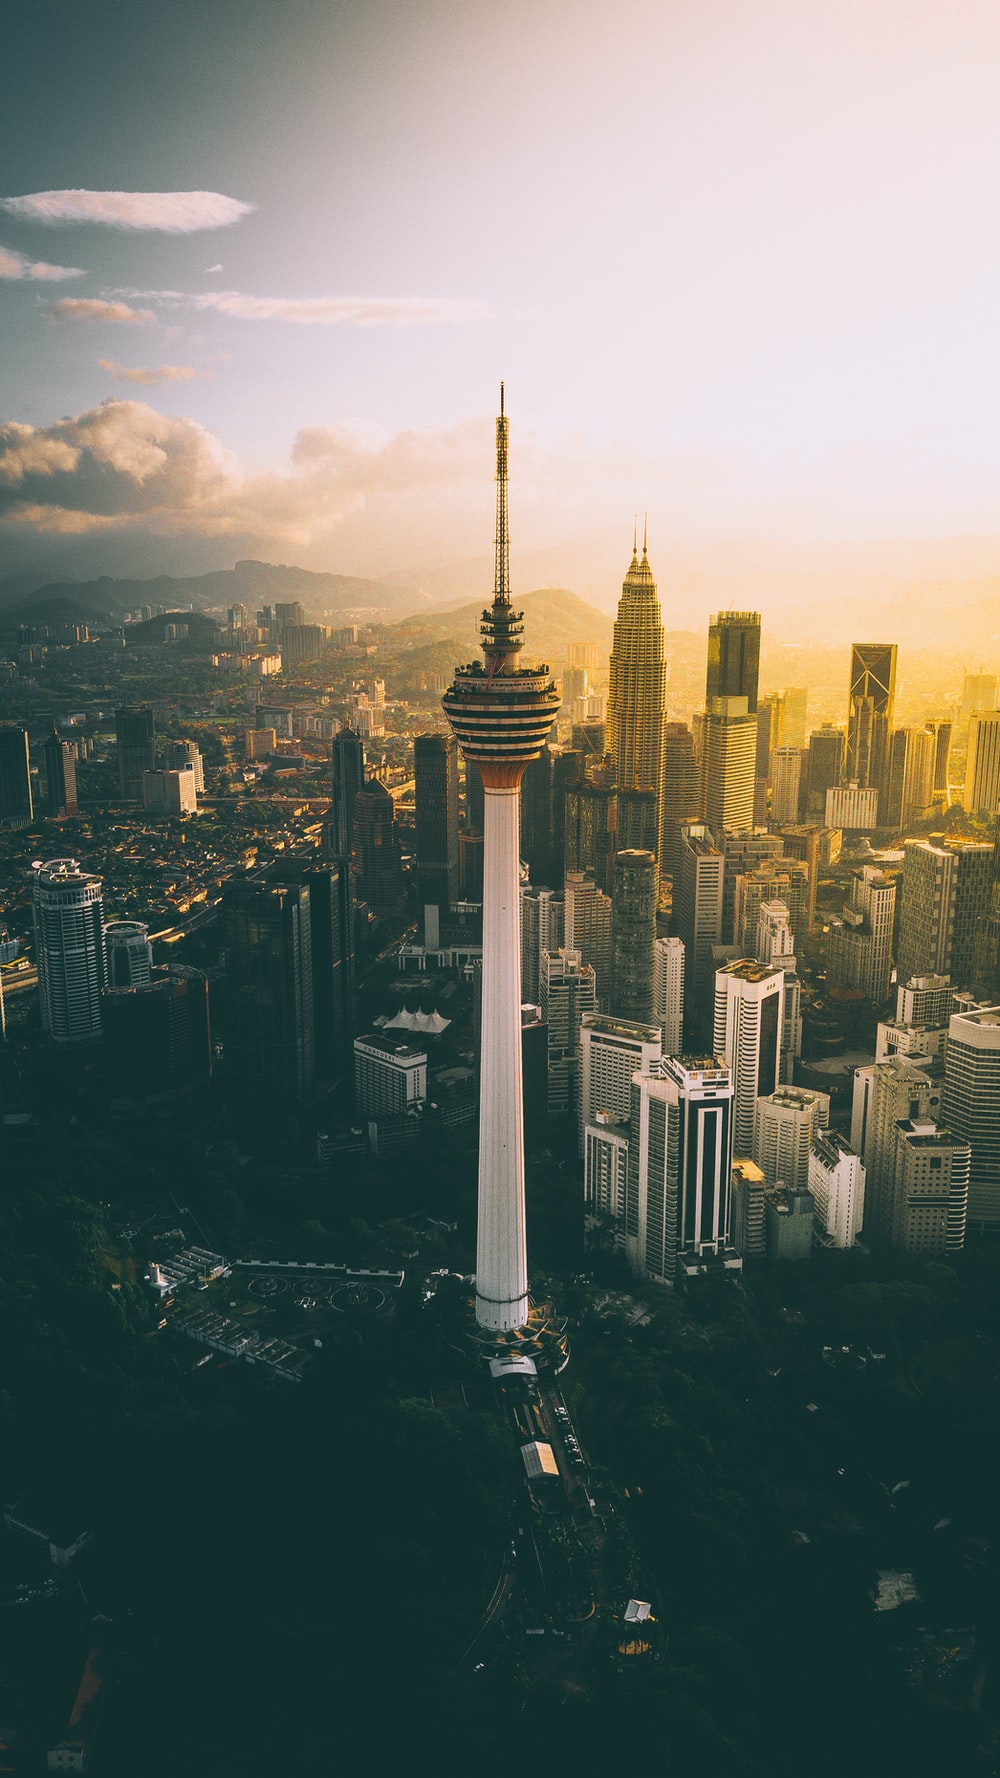 CN tower during golden hour